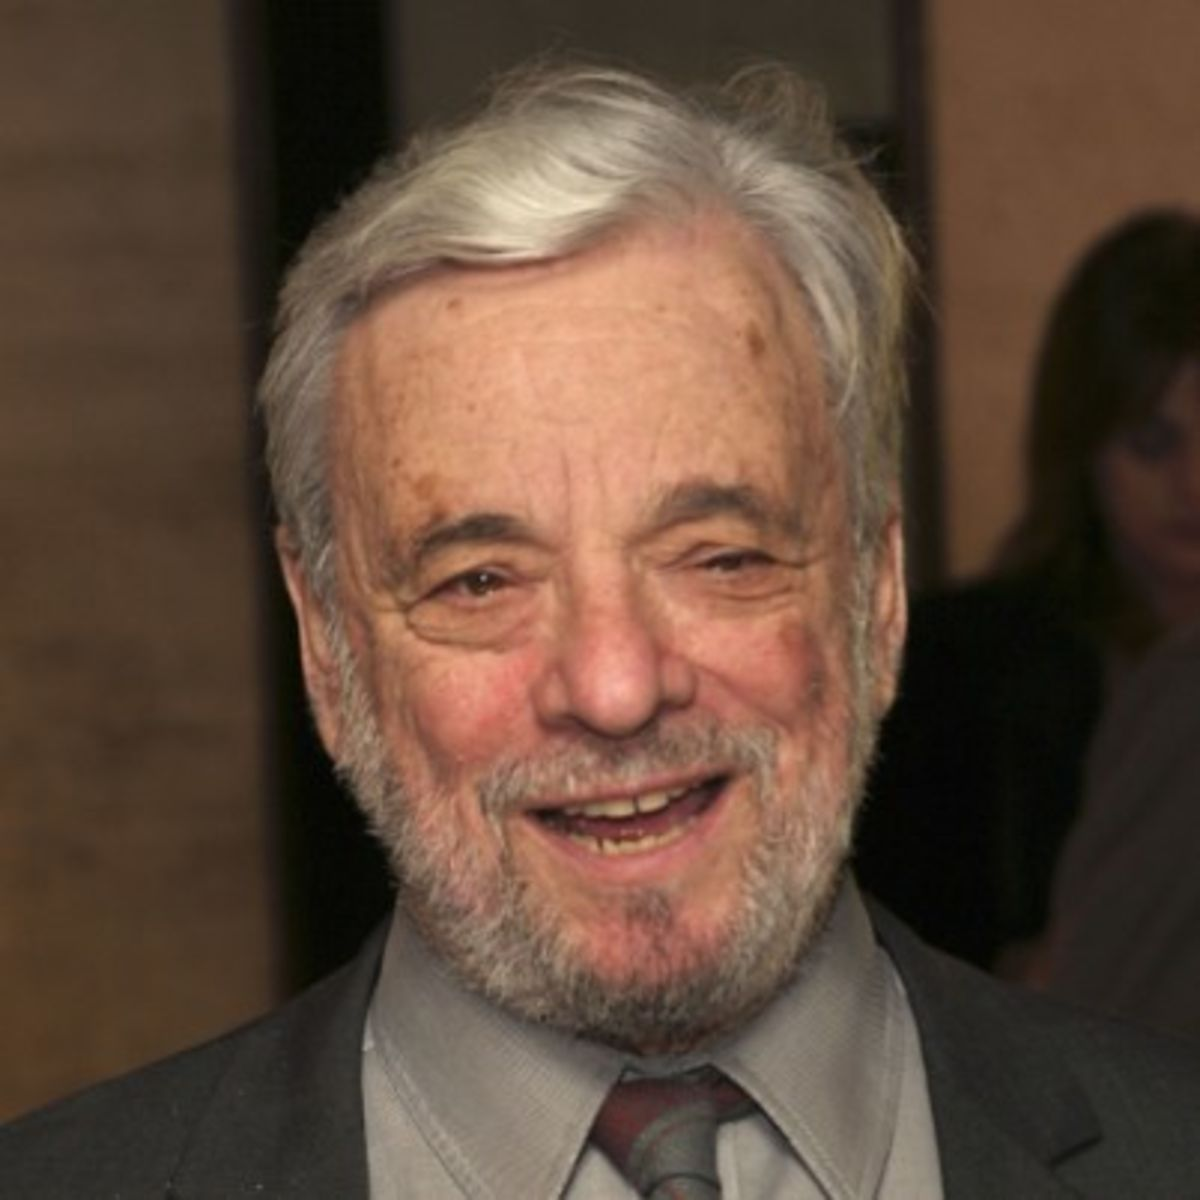 Stephen Sondheim Is One Of My Favorite Composers